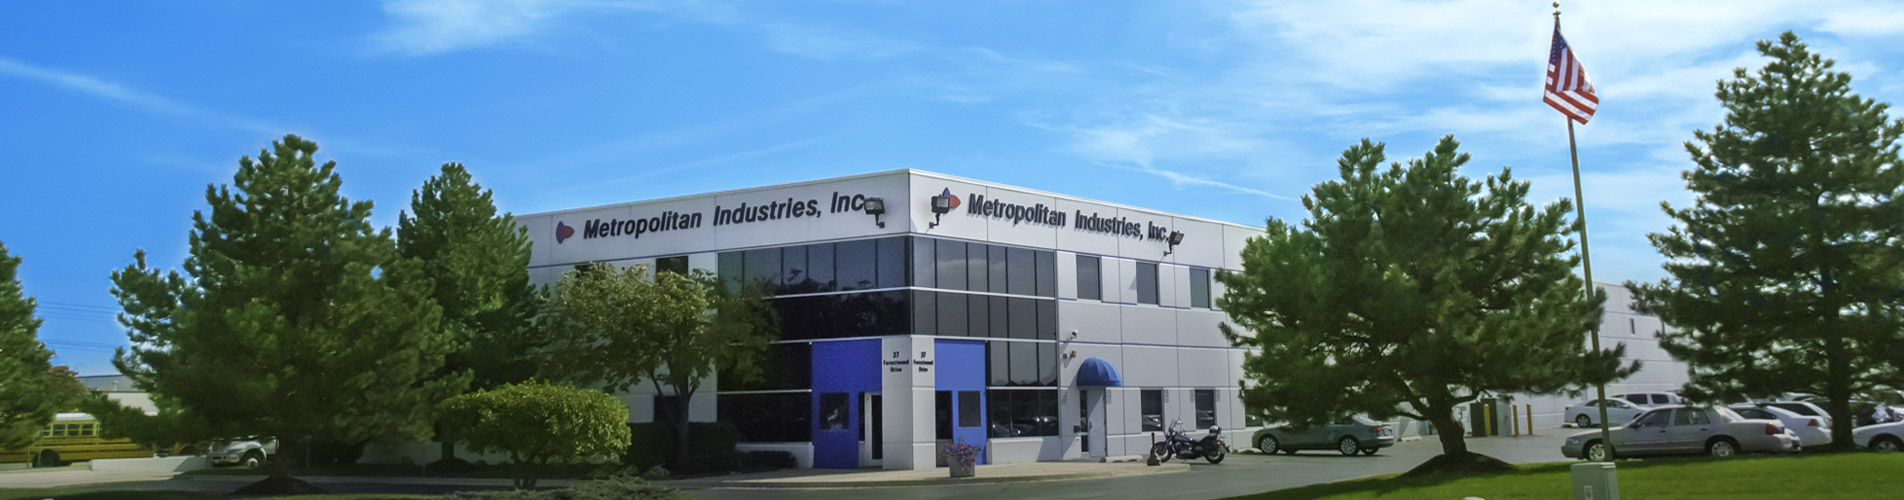 Metropolitan Industries in Romeoville, IL